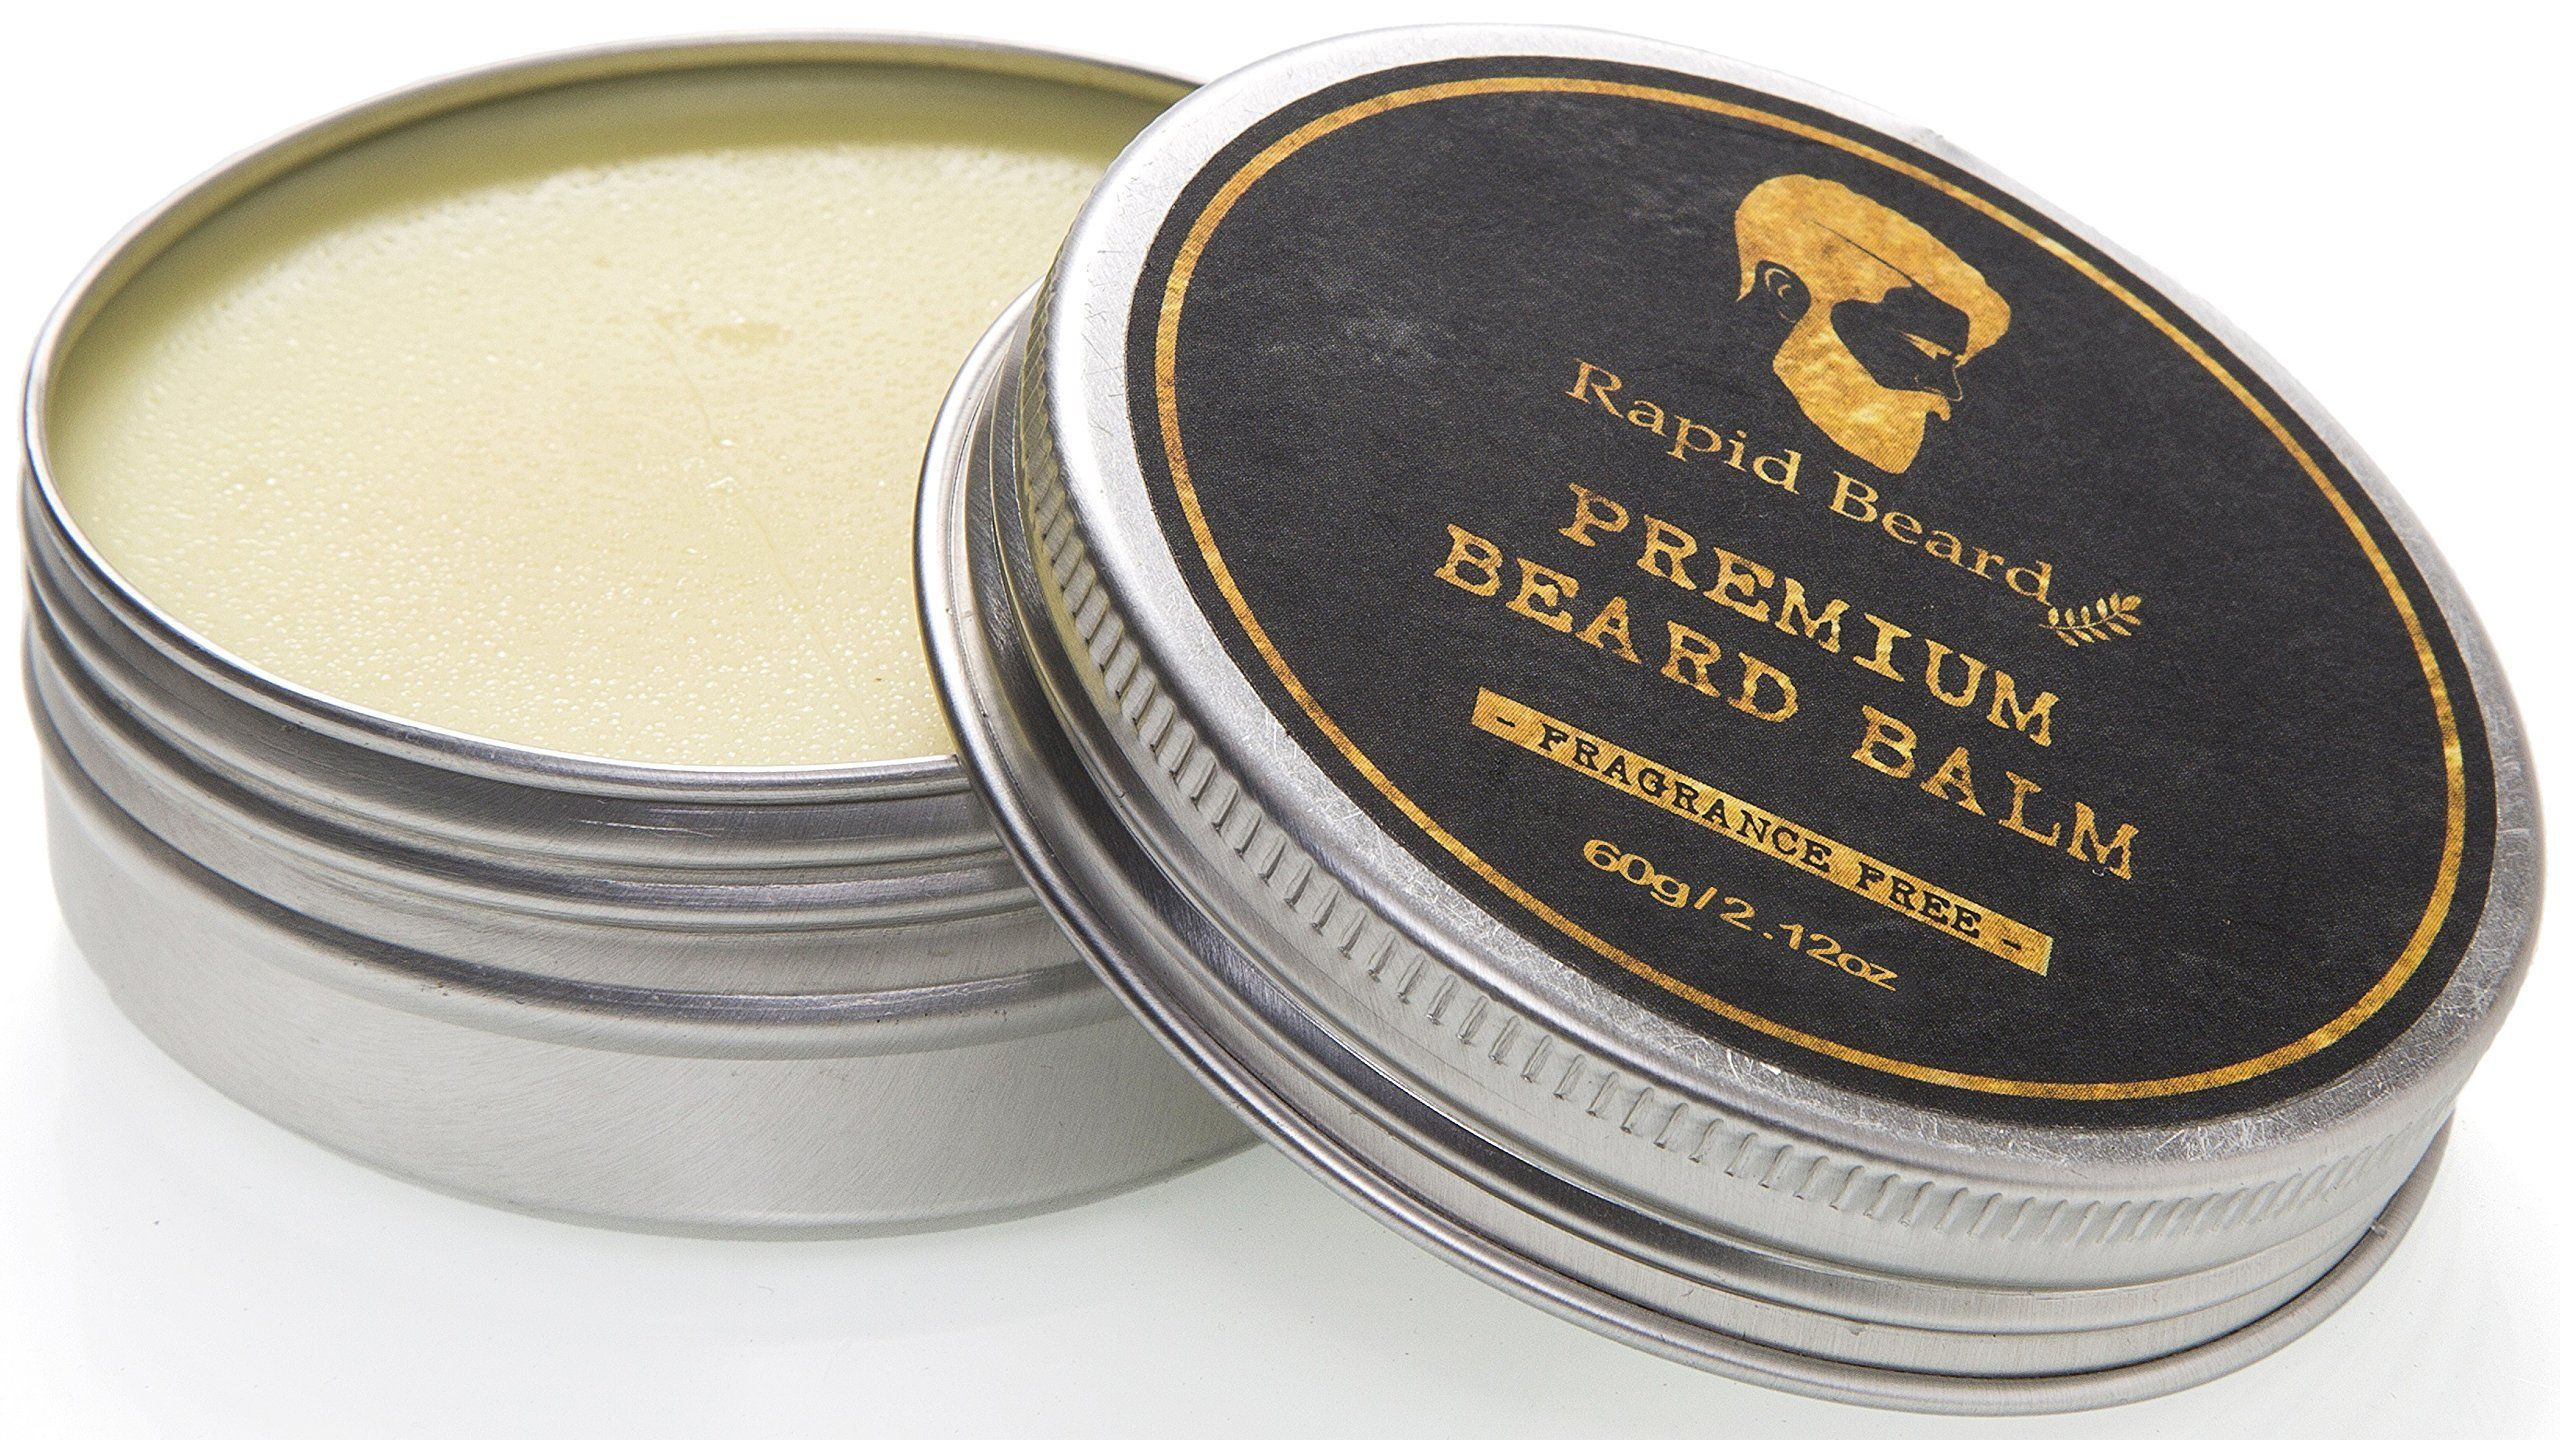 Beard oil and beard balm kit for men care unscented leave